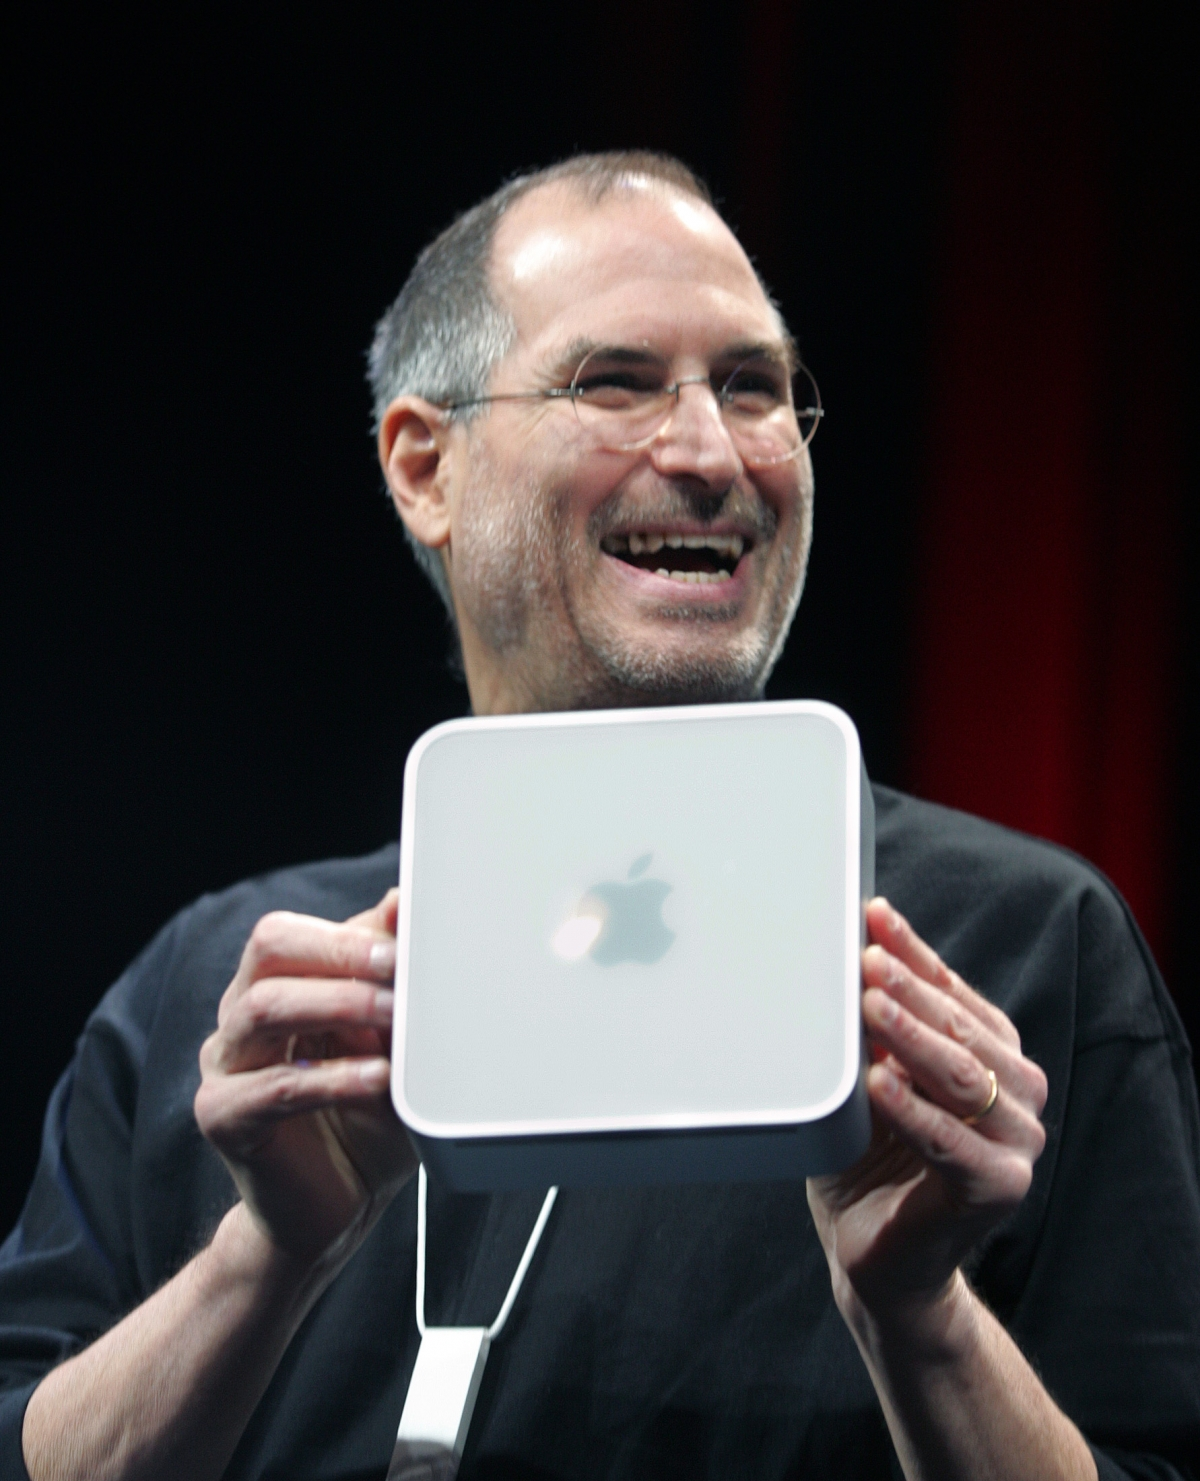 Steve Jobs Smiled After Getting Google Employee Fired For Trying to Recruit Apple Staff